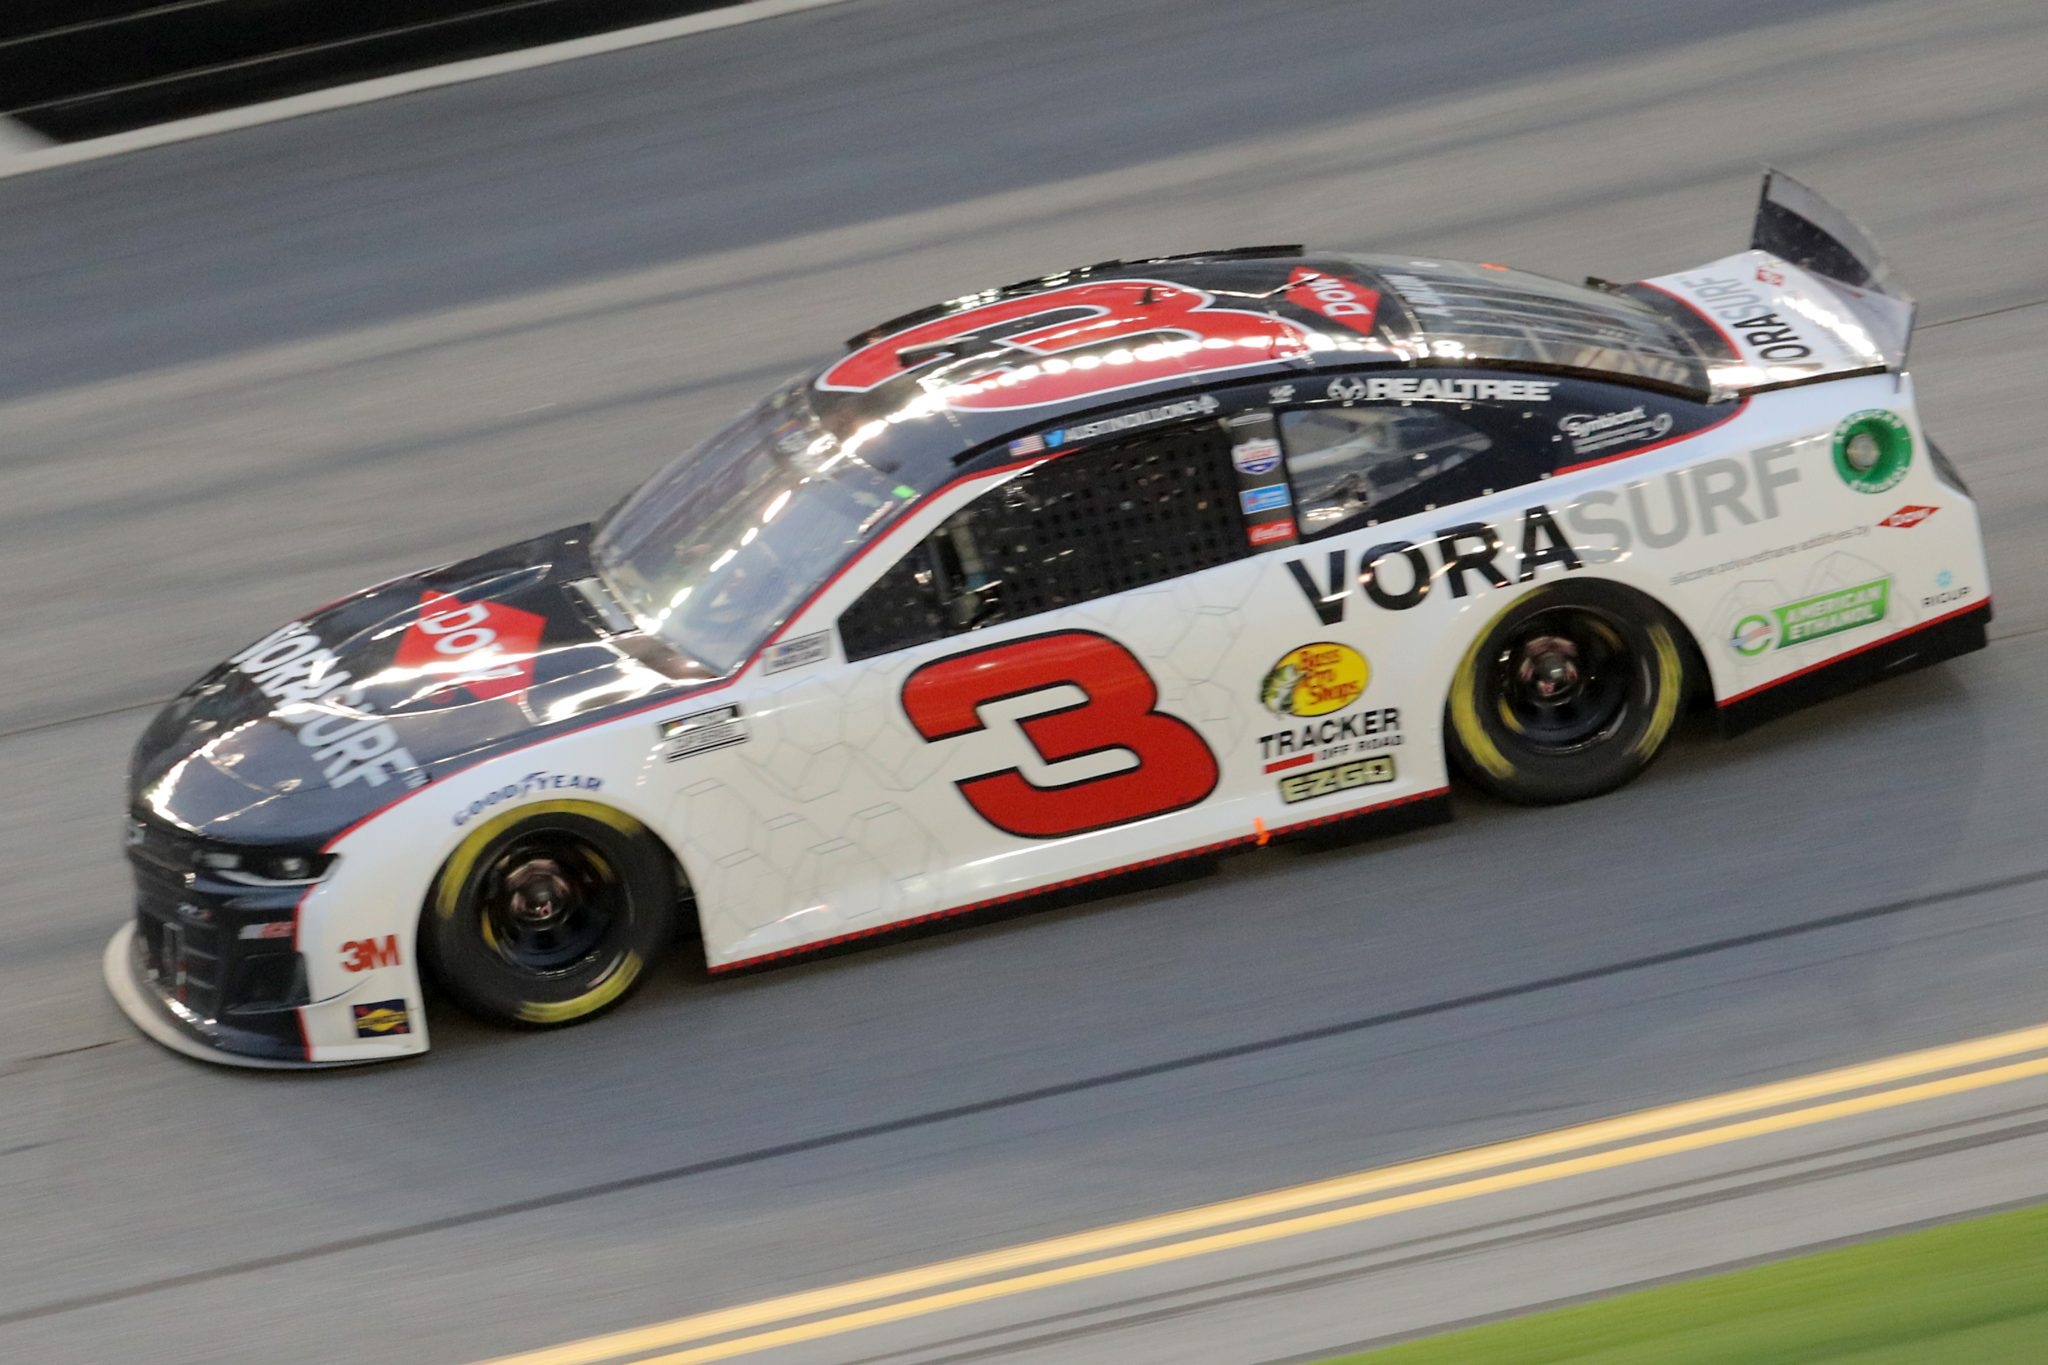 DAYTONA BEACH, FLORIDA - AUGUST 29: Austin Dillon, driver of the #3 Dow VORASURF Chevrolet, drives during the NASCAR Cup Series Coke Zero Sugar 400 at Daytona International Speedway on August 29, 2020 in Daytona Beach, Florida. (Photo by Chris Graythen/Getty Images) | Getty Images